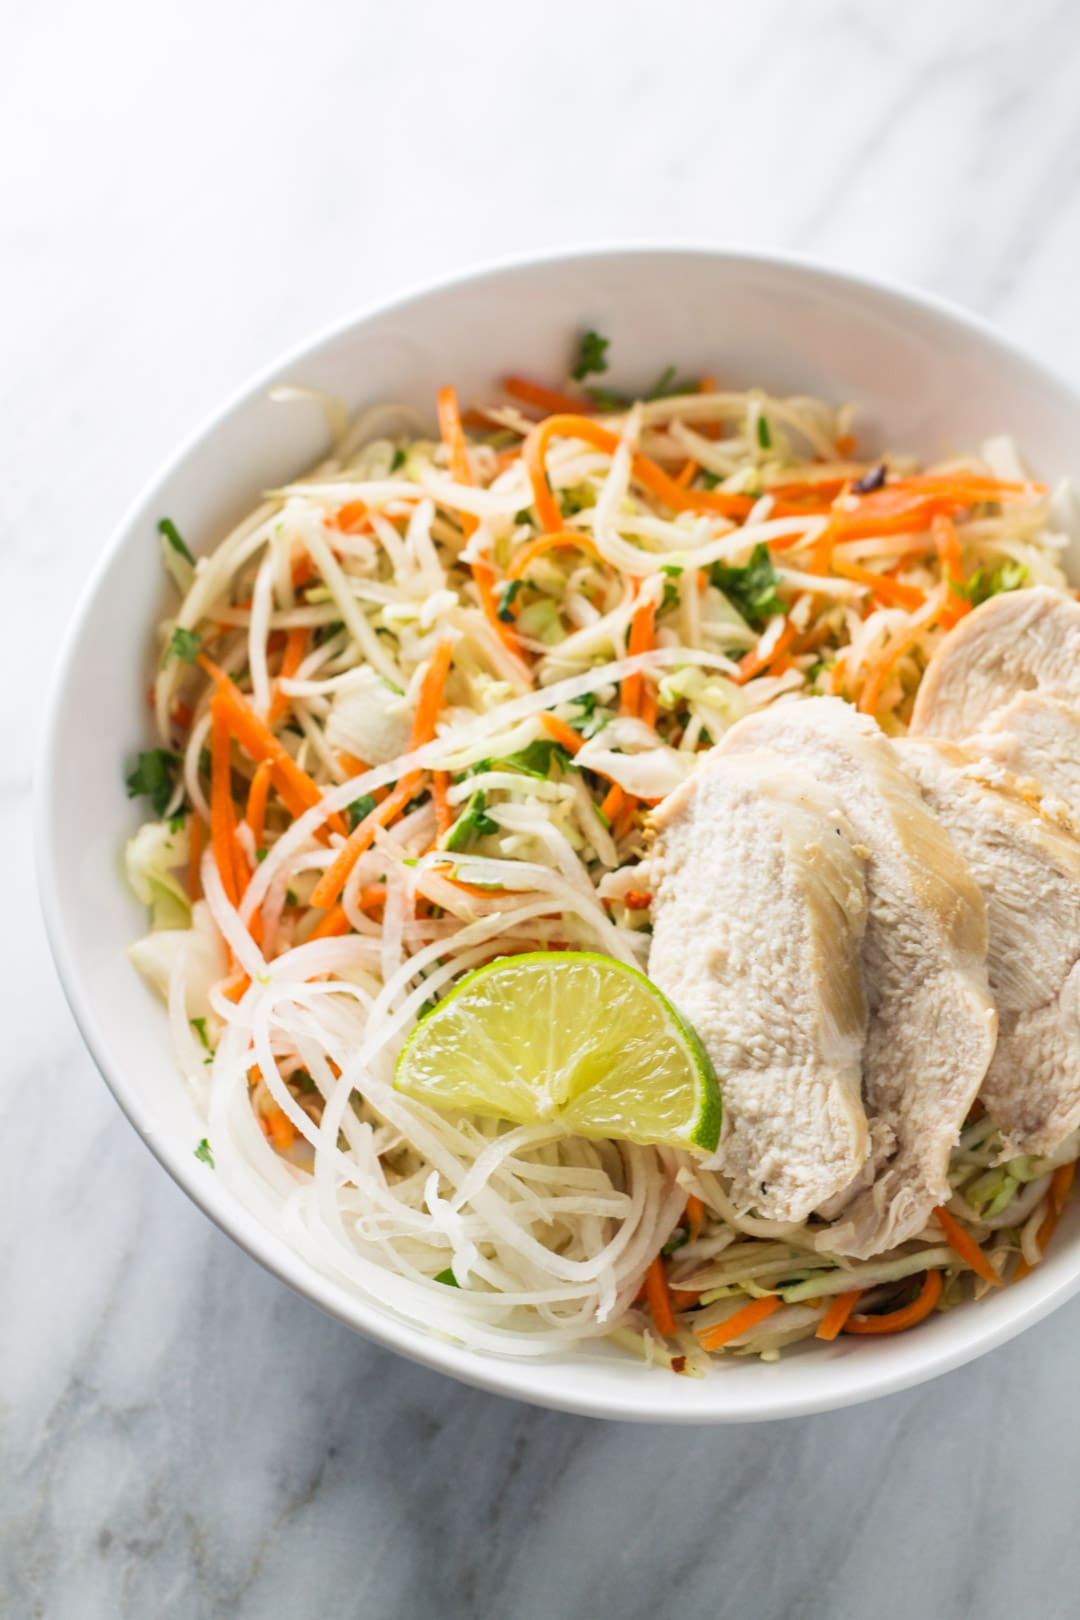 Bowl of low FODMAP Thai citrus salad topped with chicken and a lime wedge